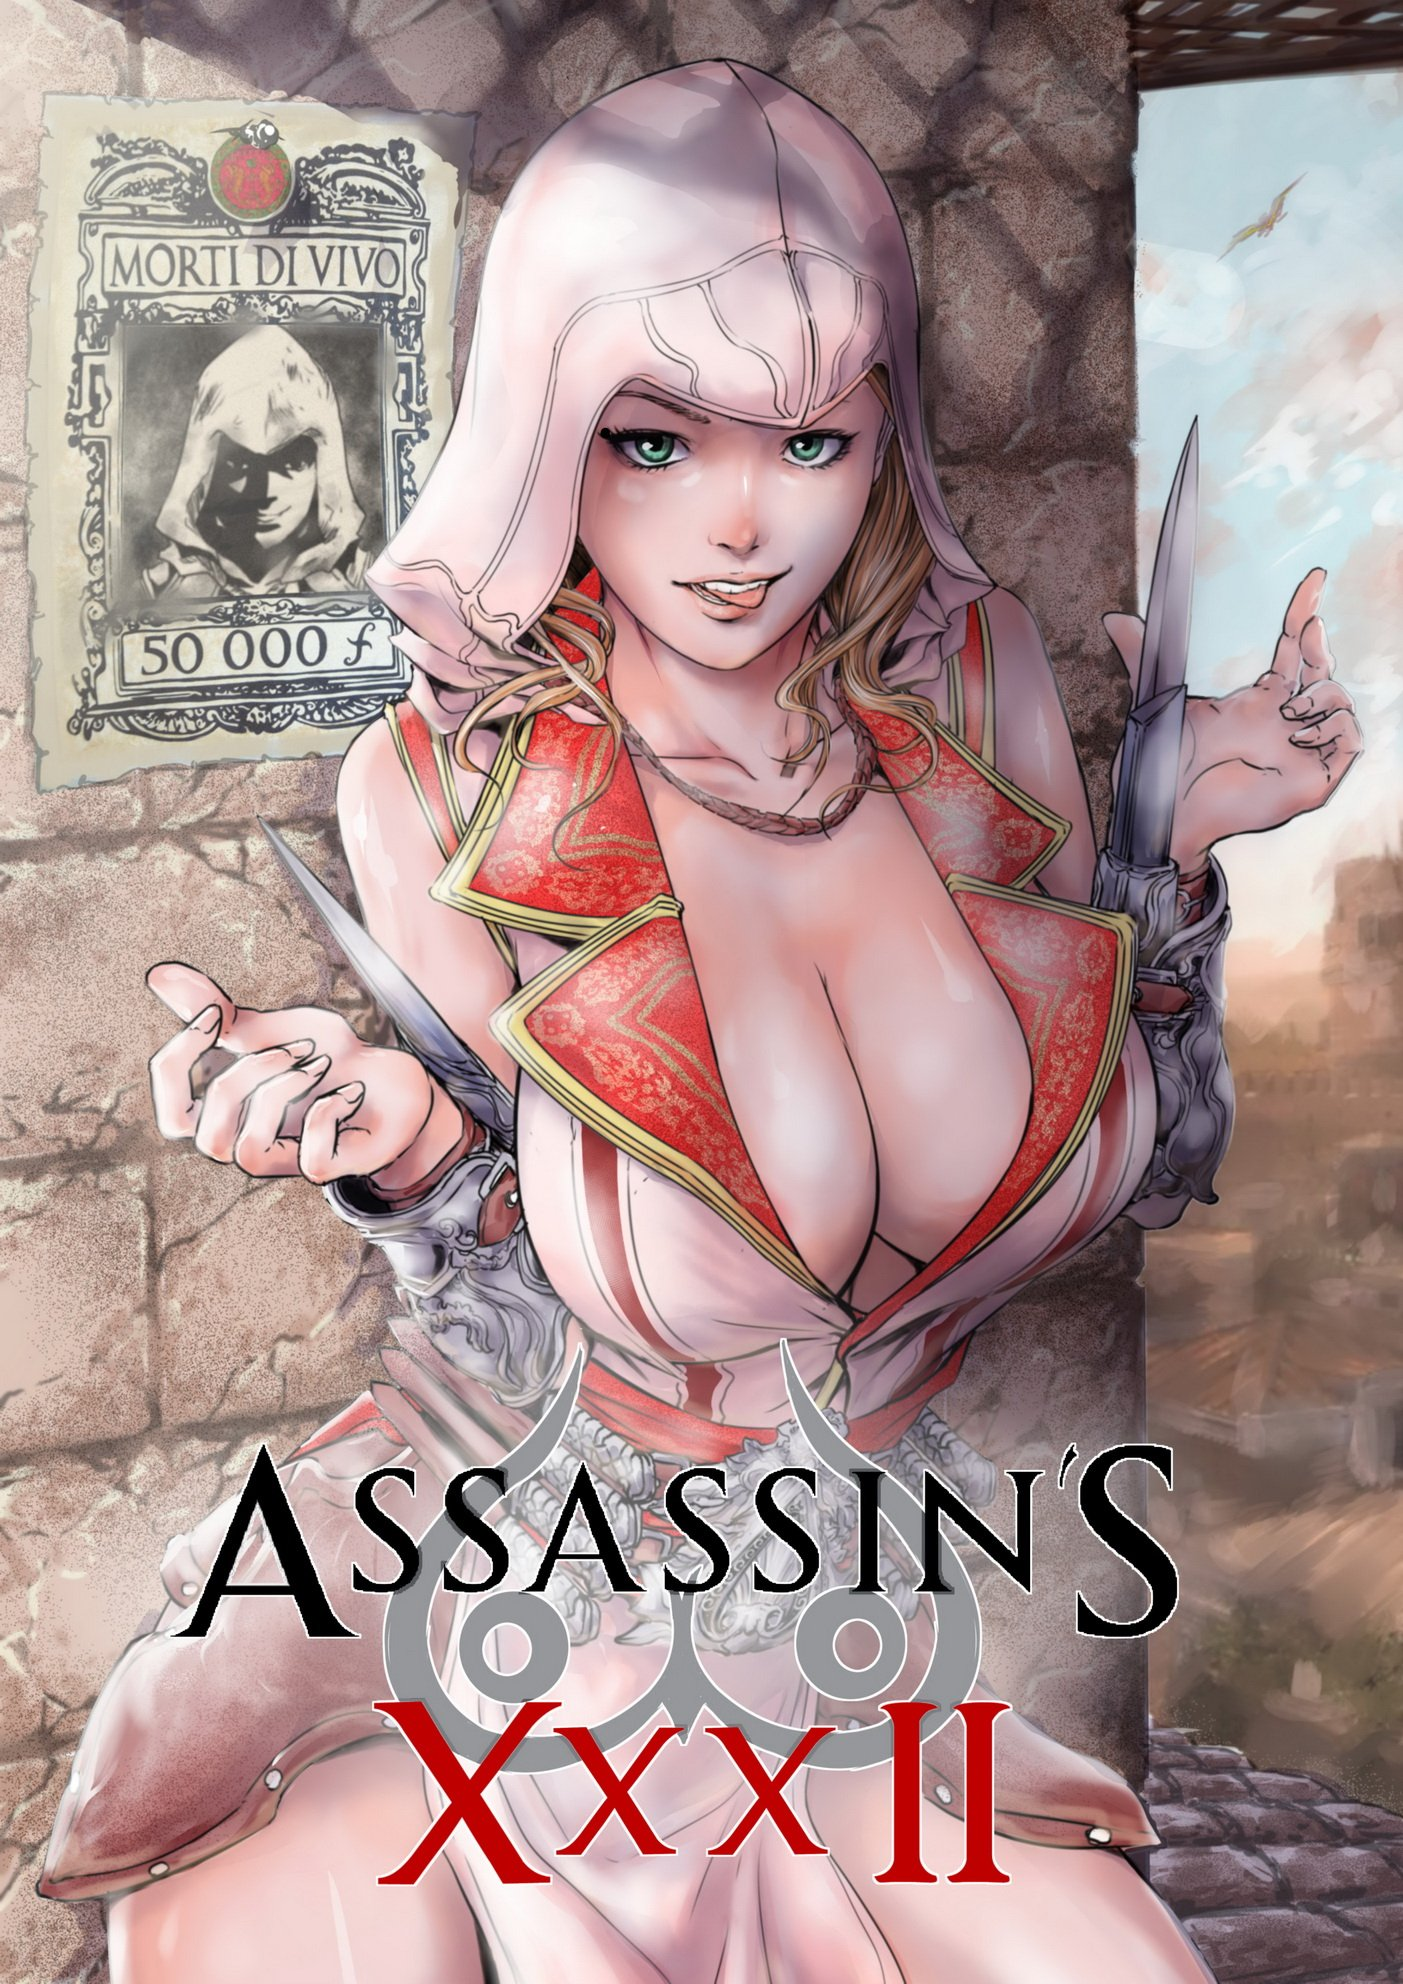 Assassins creed xxx hentai pics